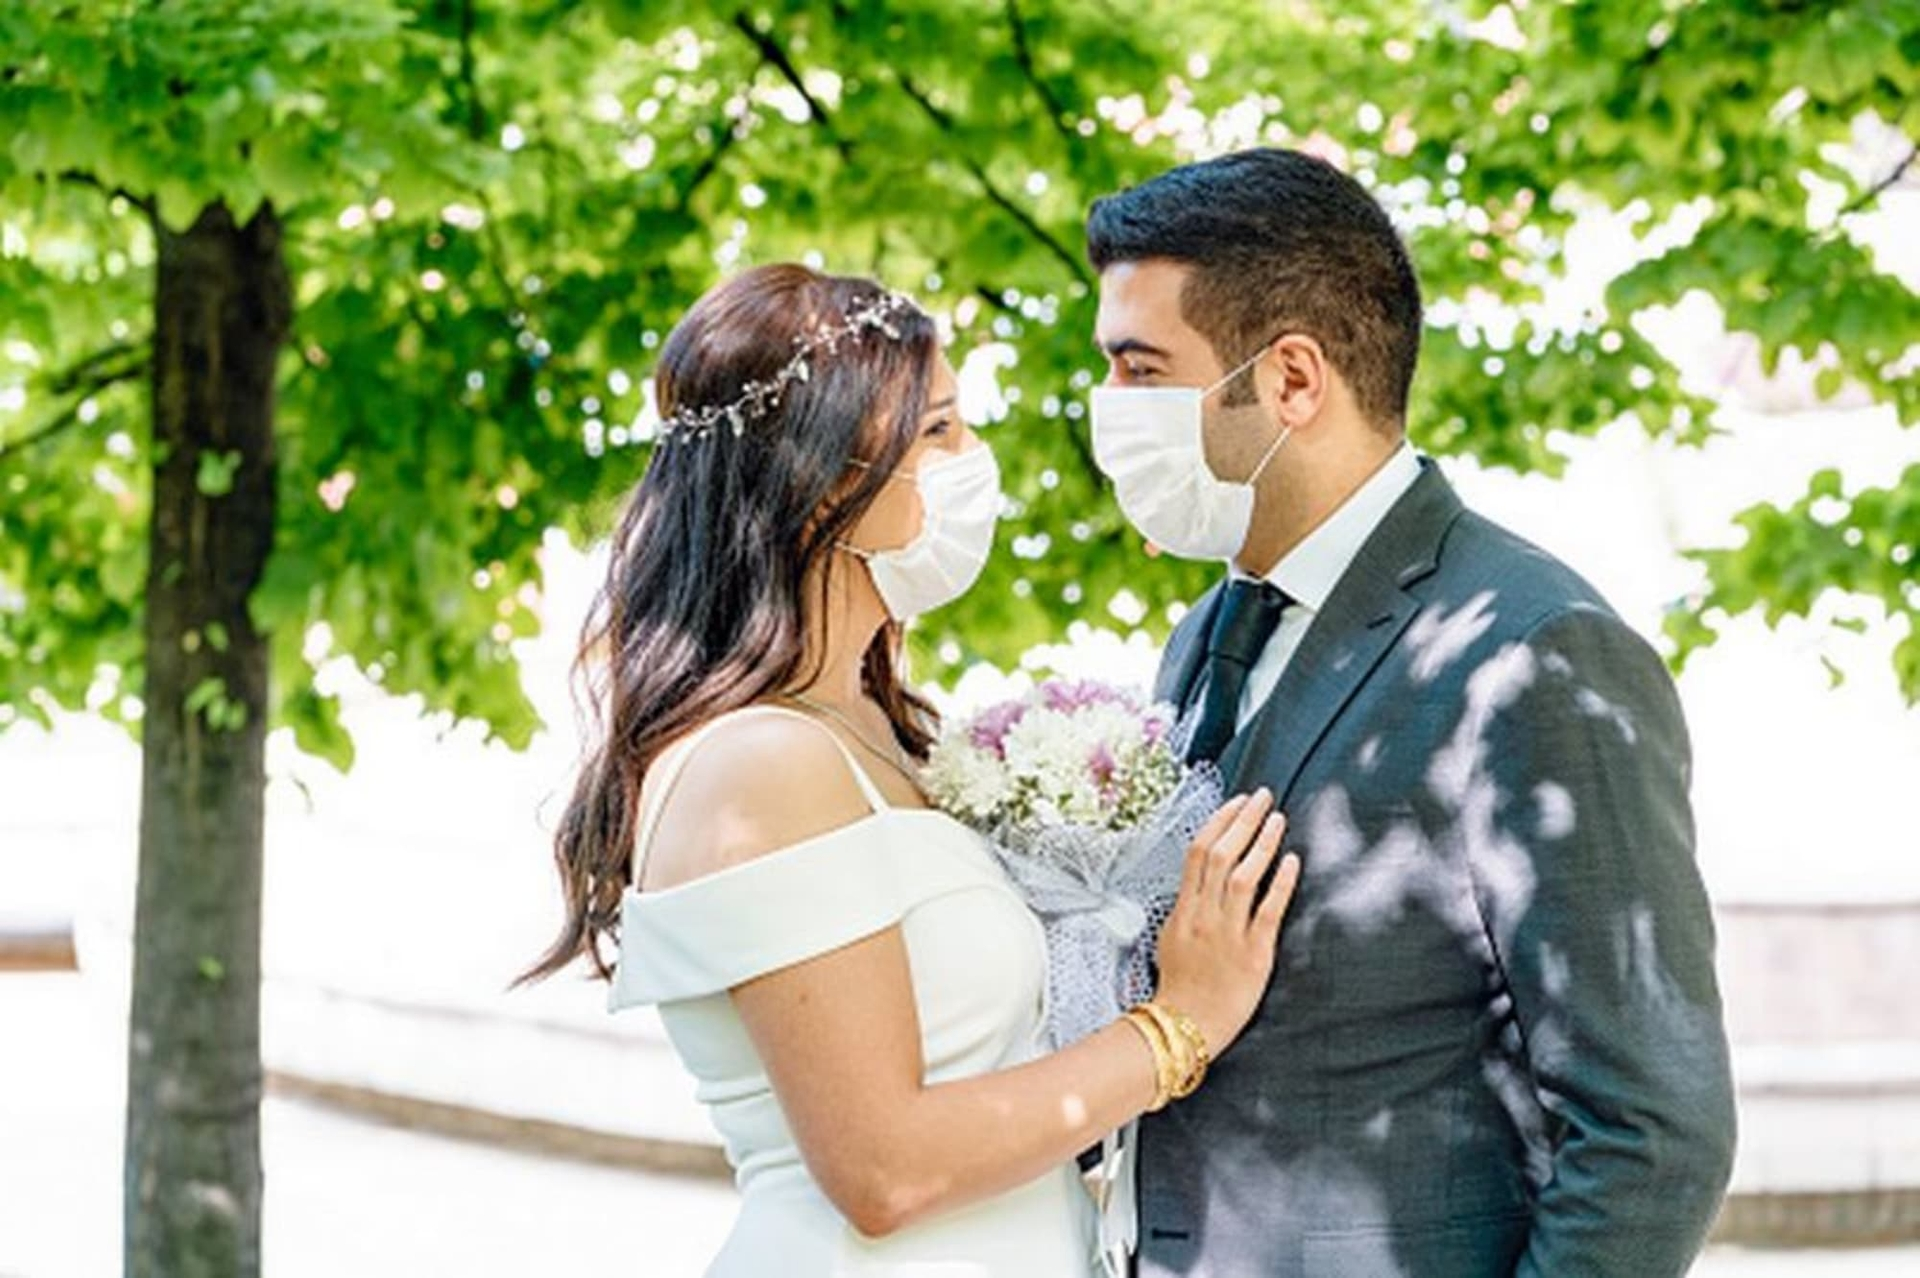 A newly wed couple with face masks stood in front of a tree